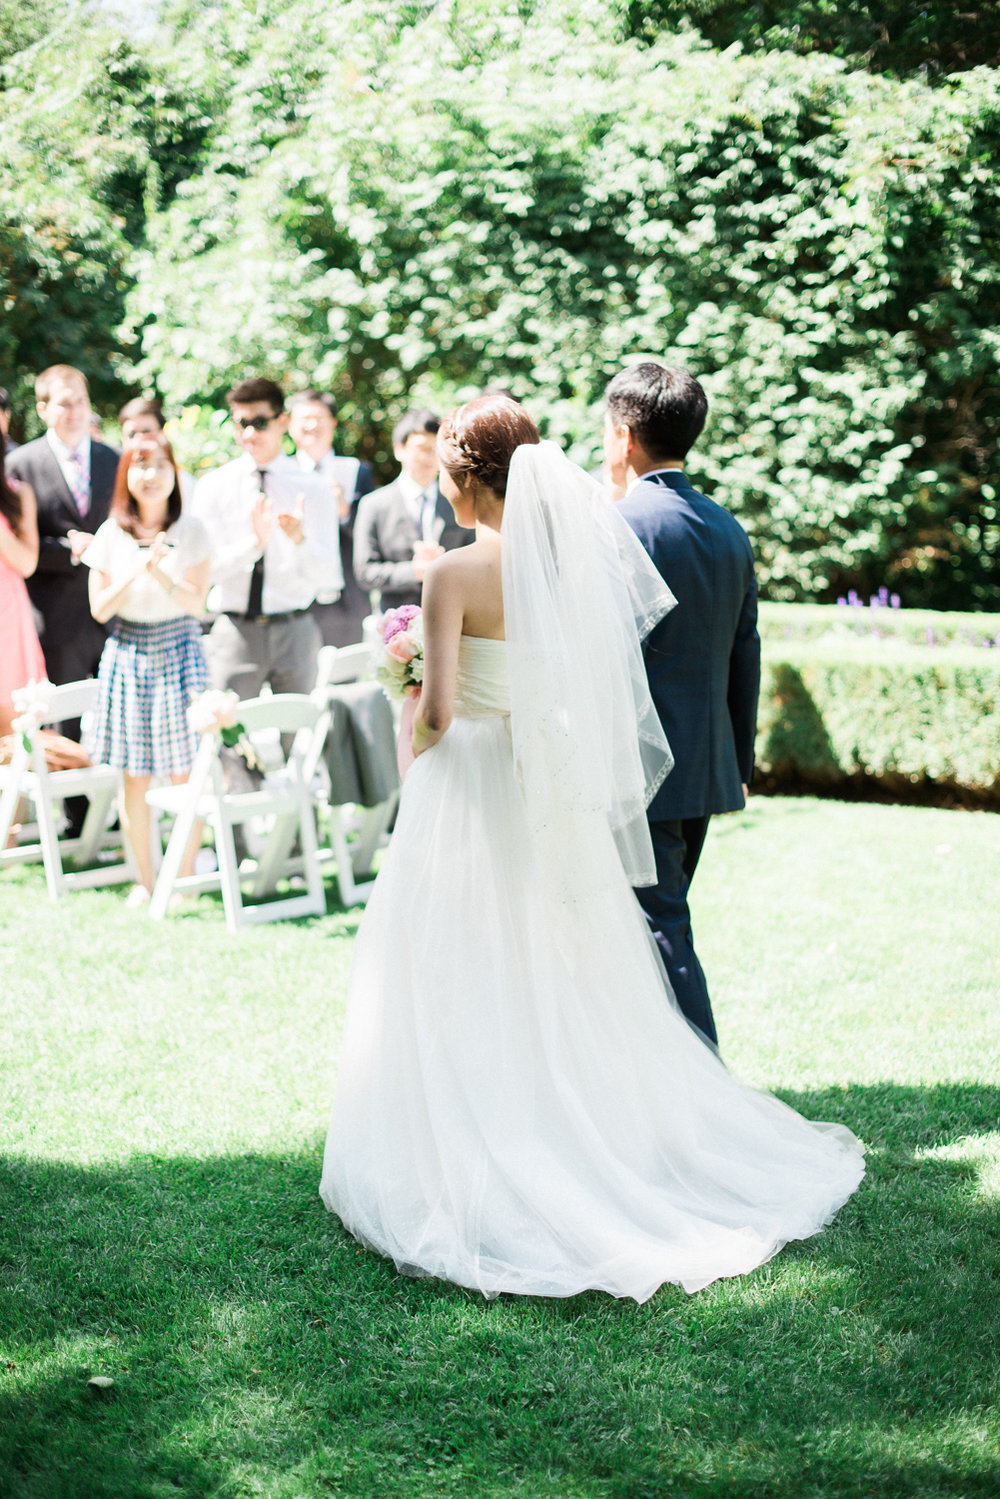 ClaireChris_EstatesofSunnybrook_Wedding-37.jpg